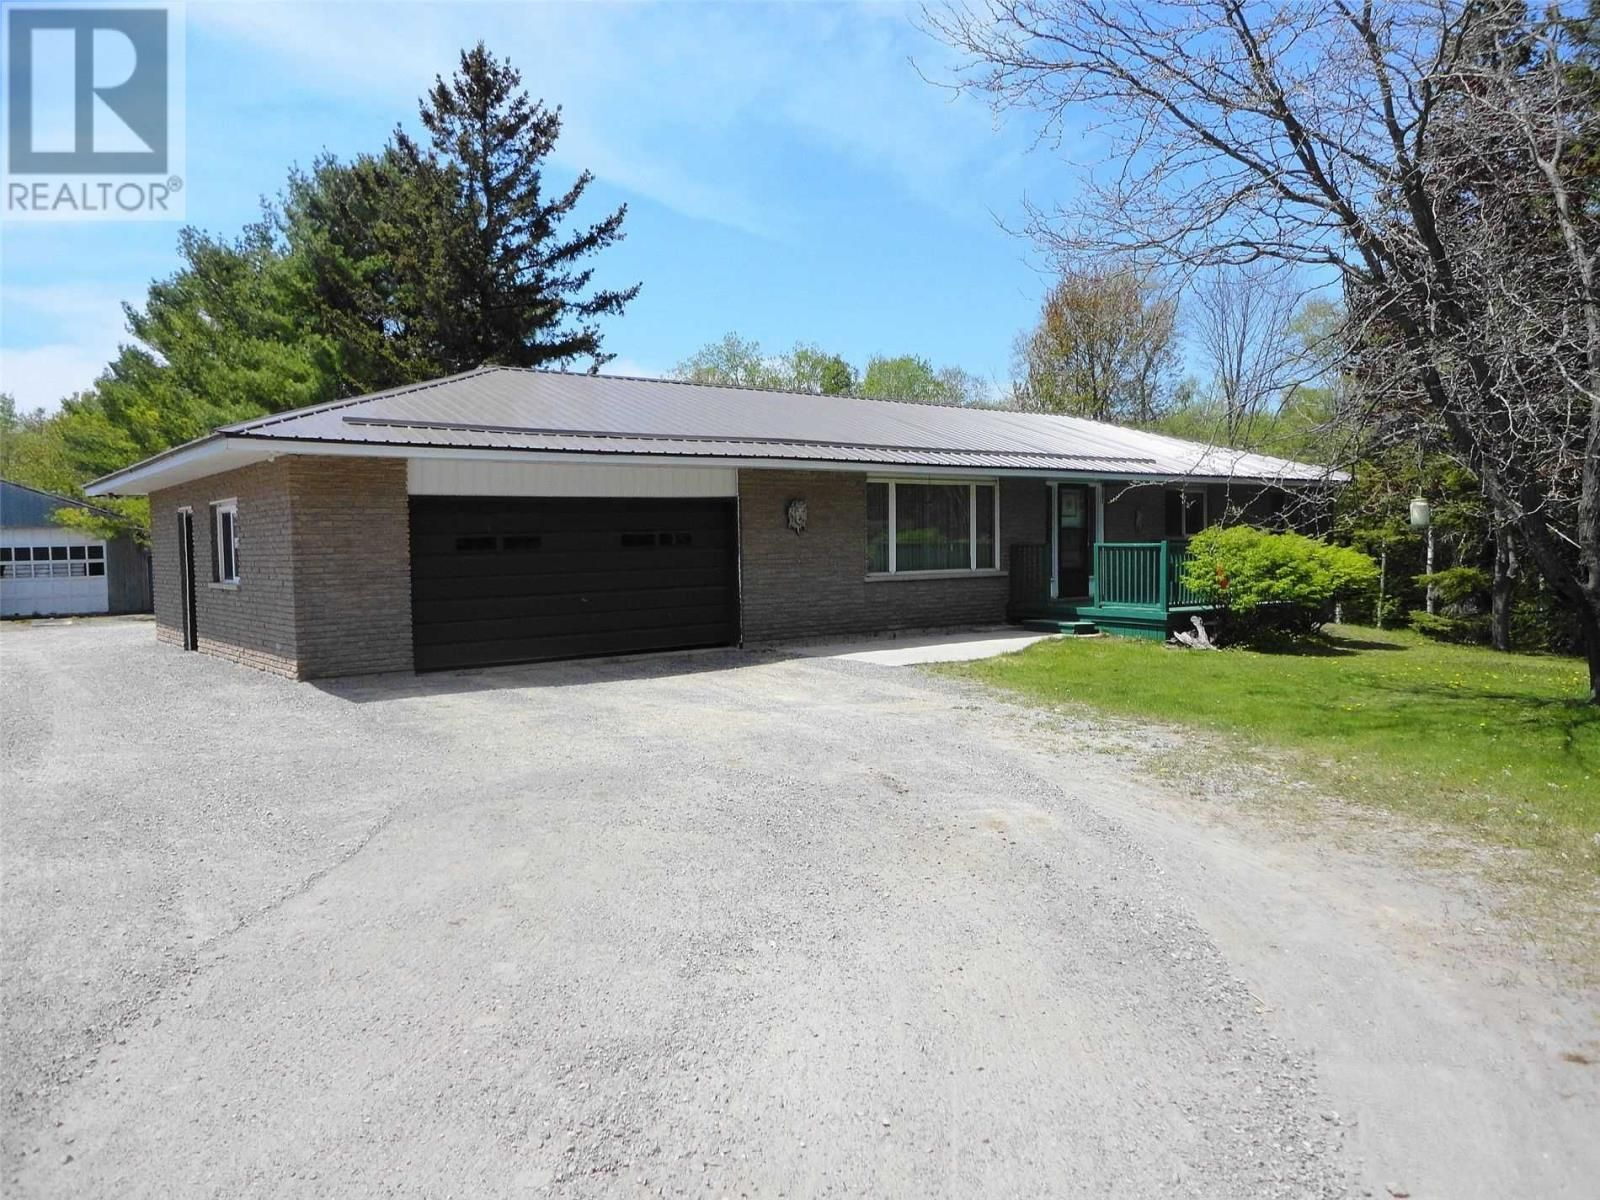 Main Photo: 206 TOBACCO RD in Cramahe: House for sale : MLS®# X5240873